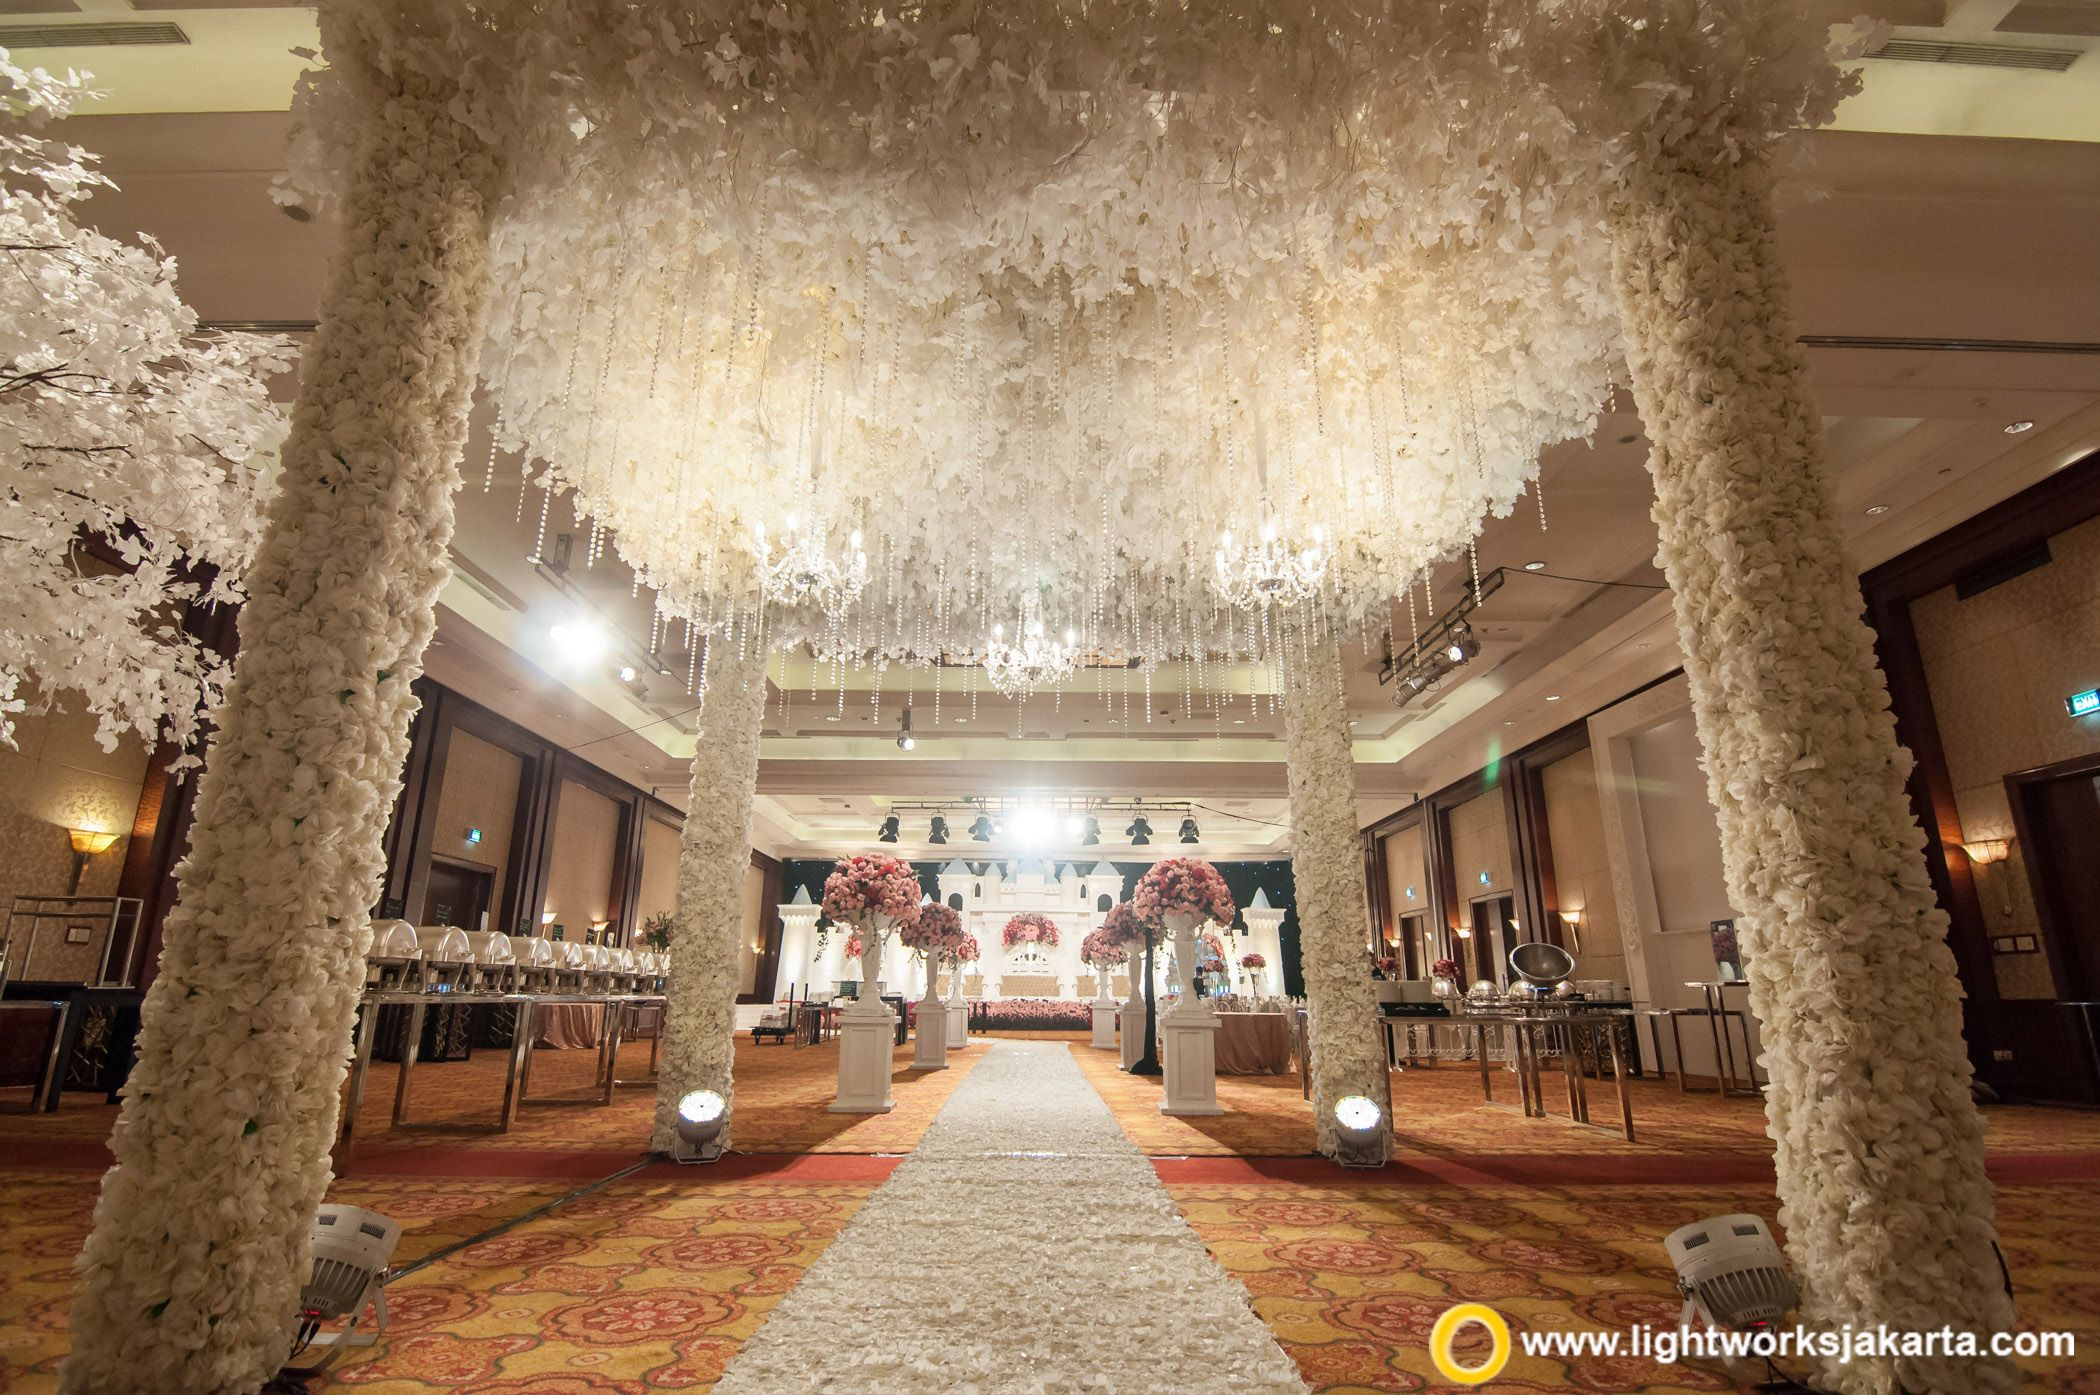 Simple yet gorgeous wedding foyer at the bali room kempinski simple yet gorgeous wedding foyer at the bali room kempinski hotel jakarta made by vica decoration and lighting designer from lightworks pinterest junglespirit Choice Image